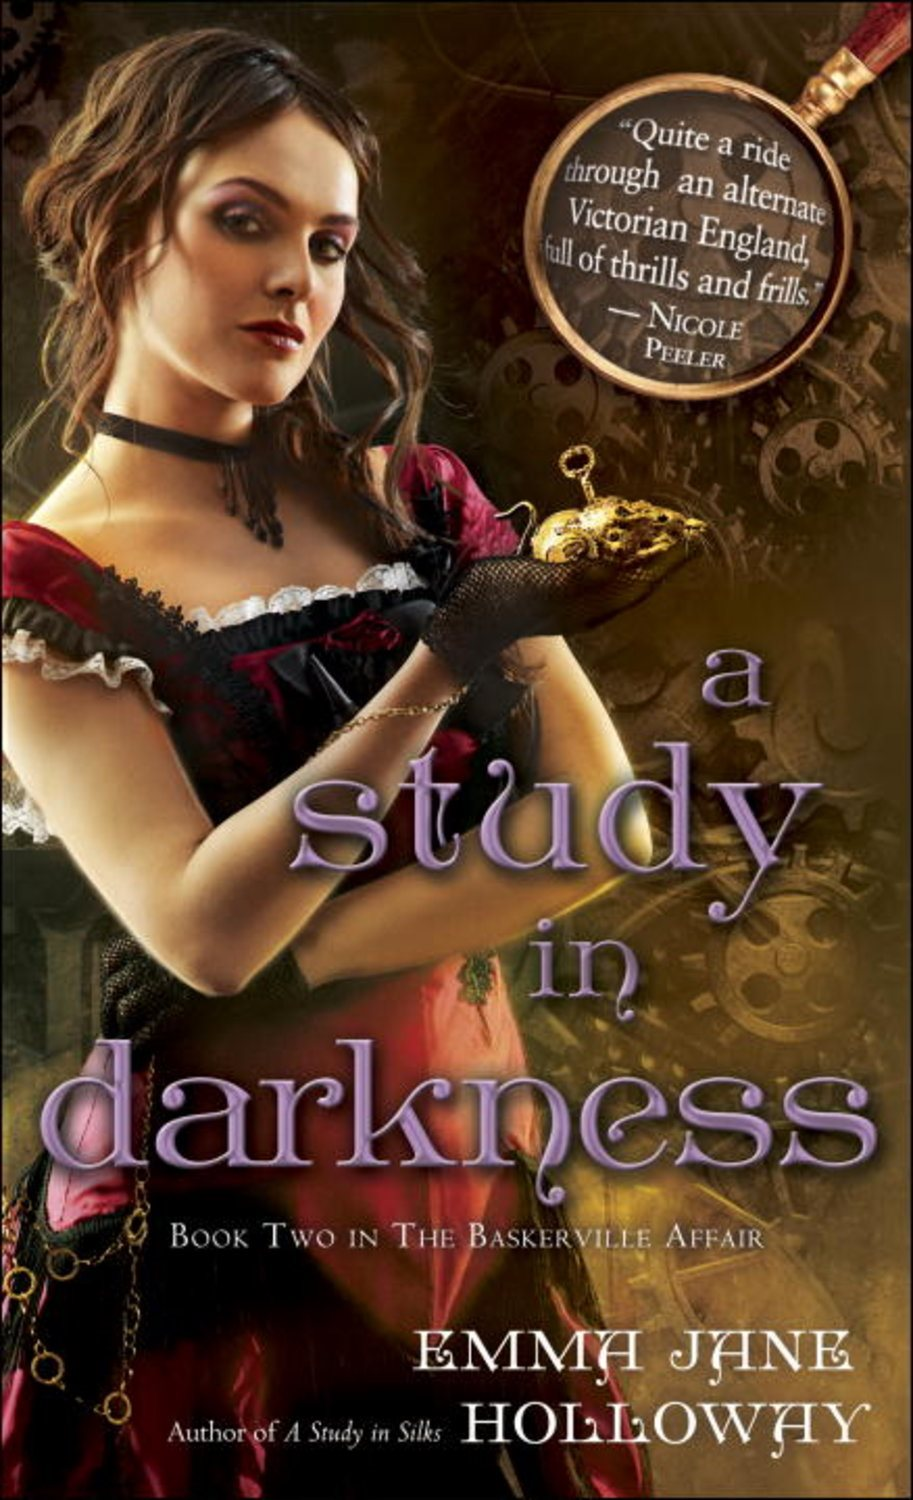 A Study in Darkness 9780345537195